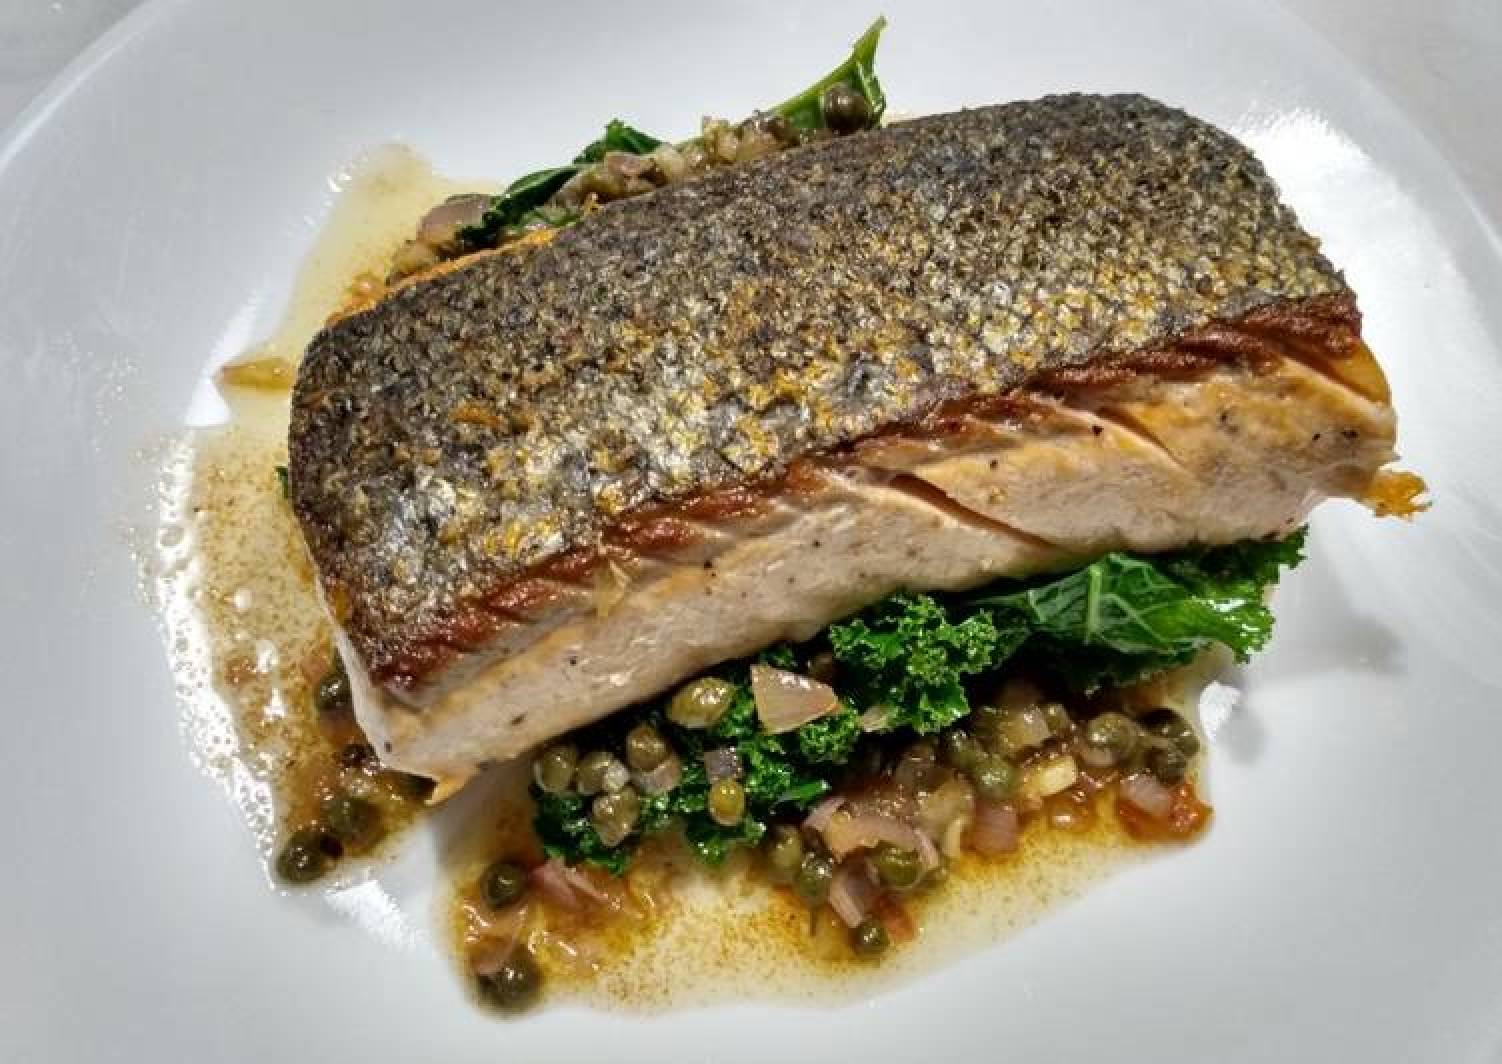 Crispy-skinned salmon with brown butter and capers